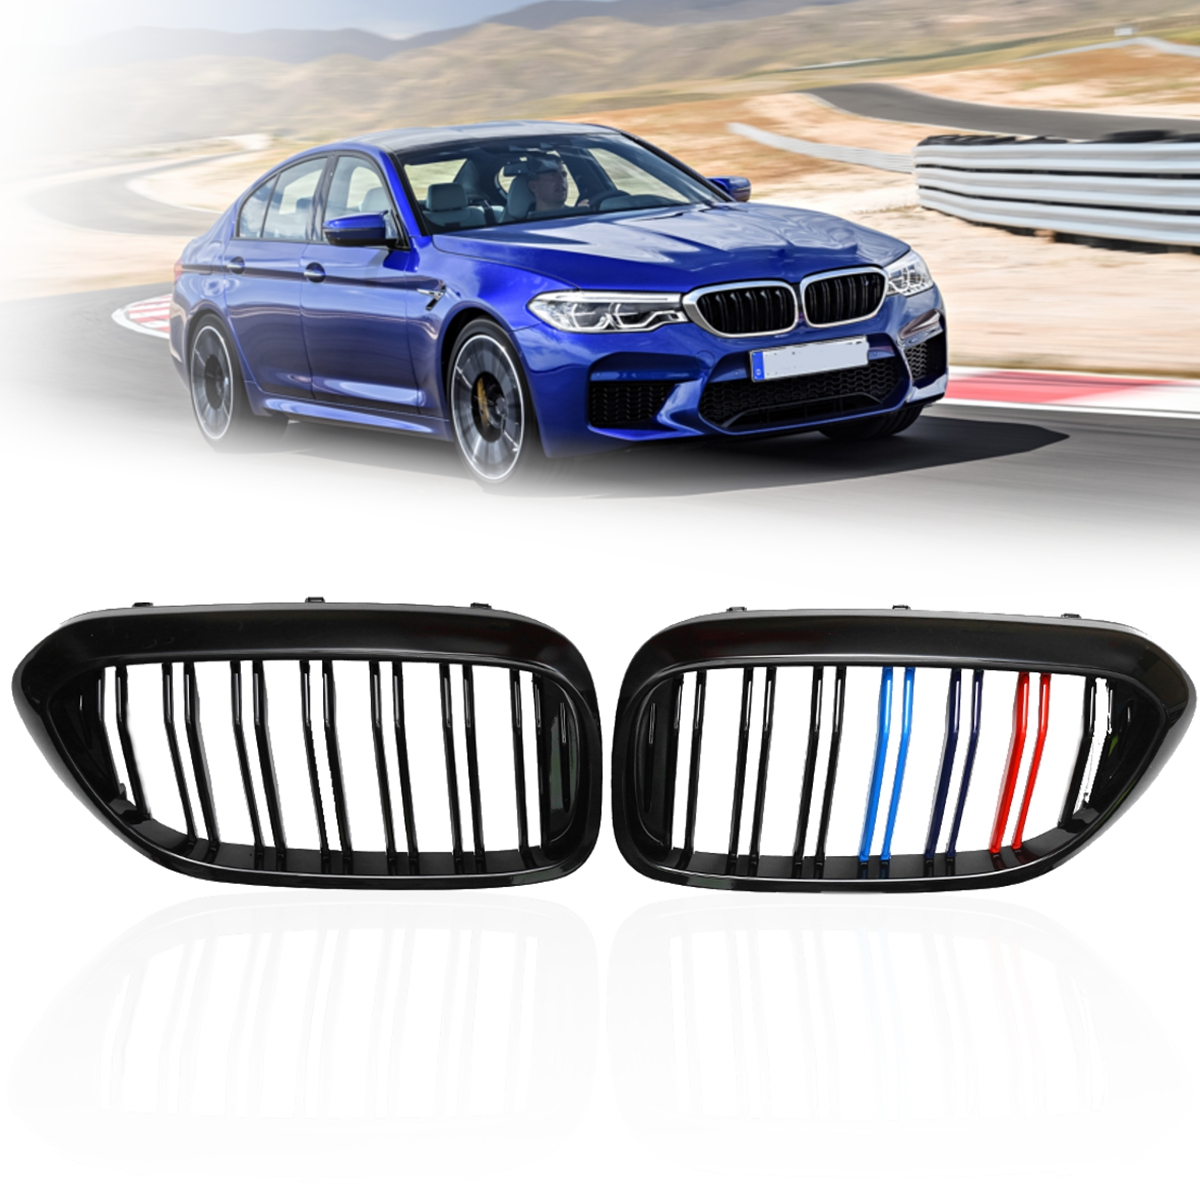 Pair Gloss Black M Color/Gloss Black Front Dual Slats Grilles Car styling Front Racing Grille For BMW 5 Series G30 G38 2017 цена 2017